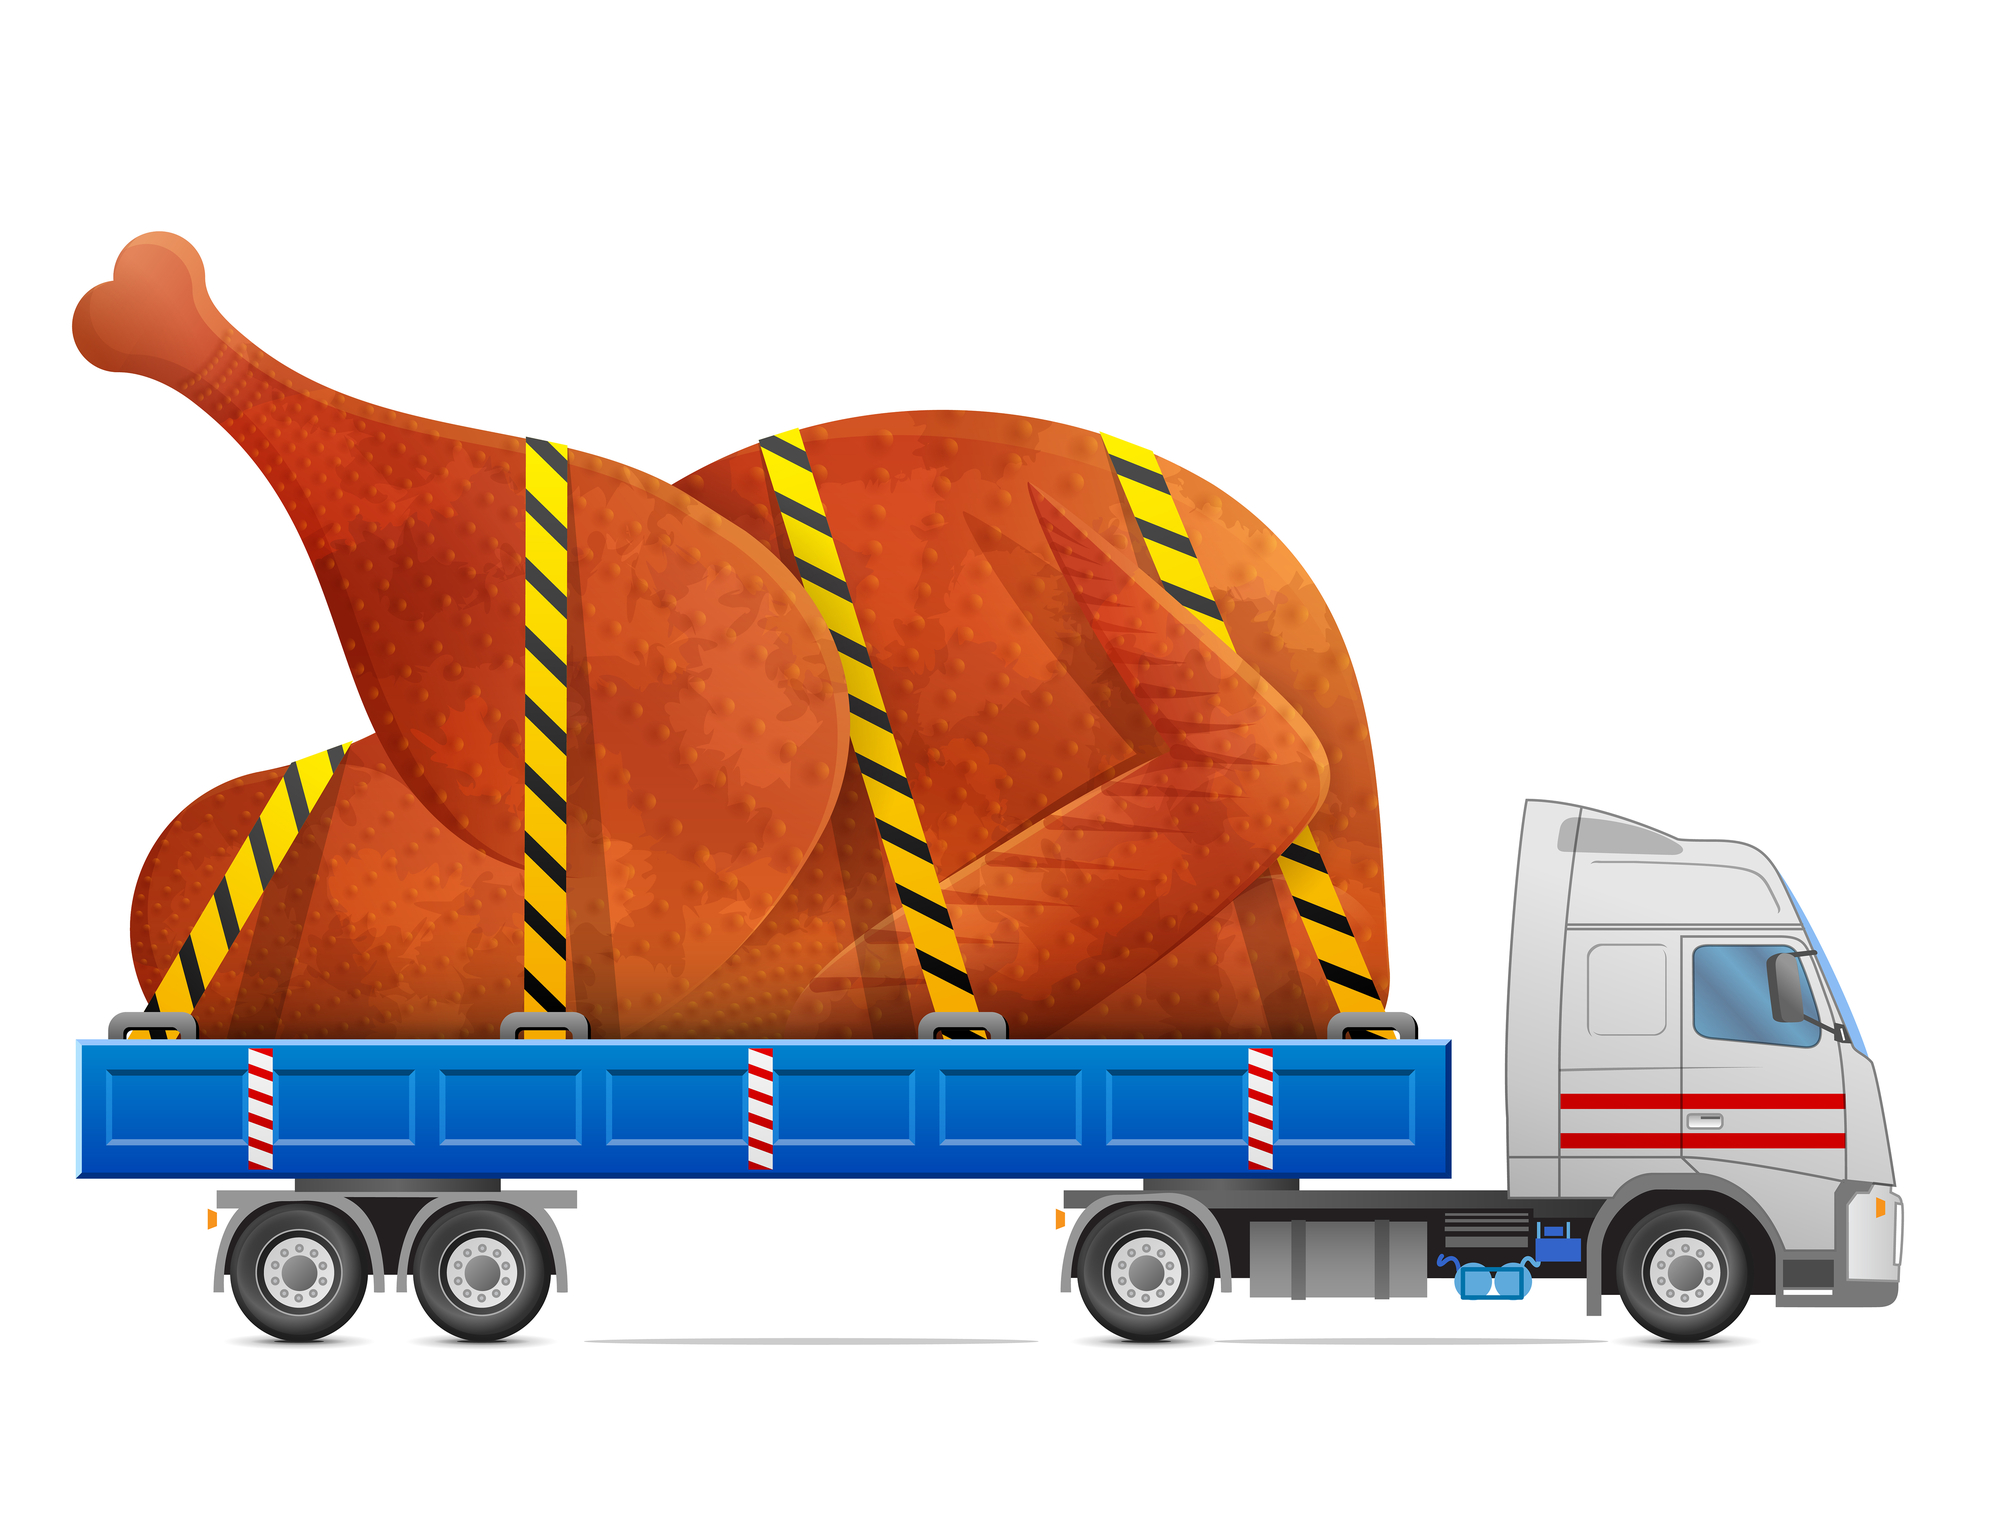 A vector of a truck hauling a giant turkey